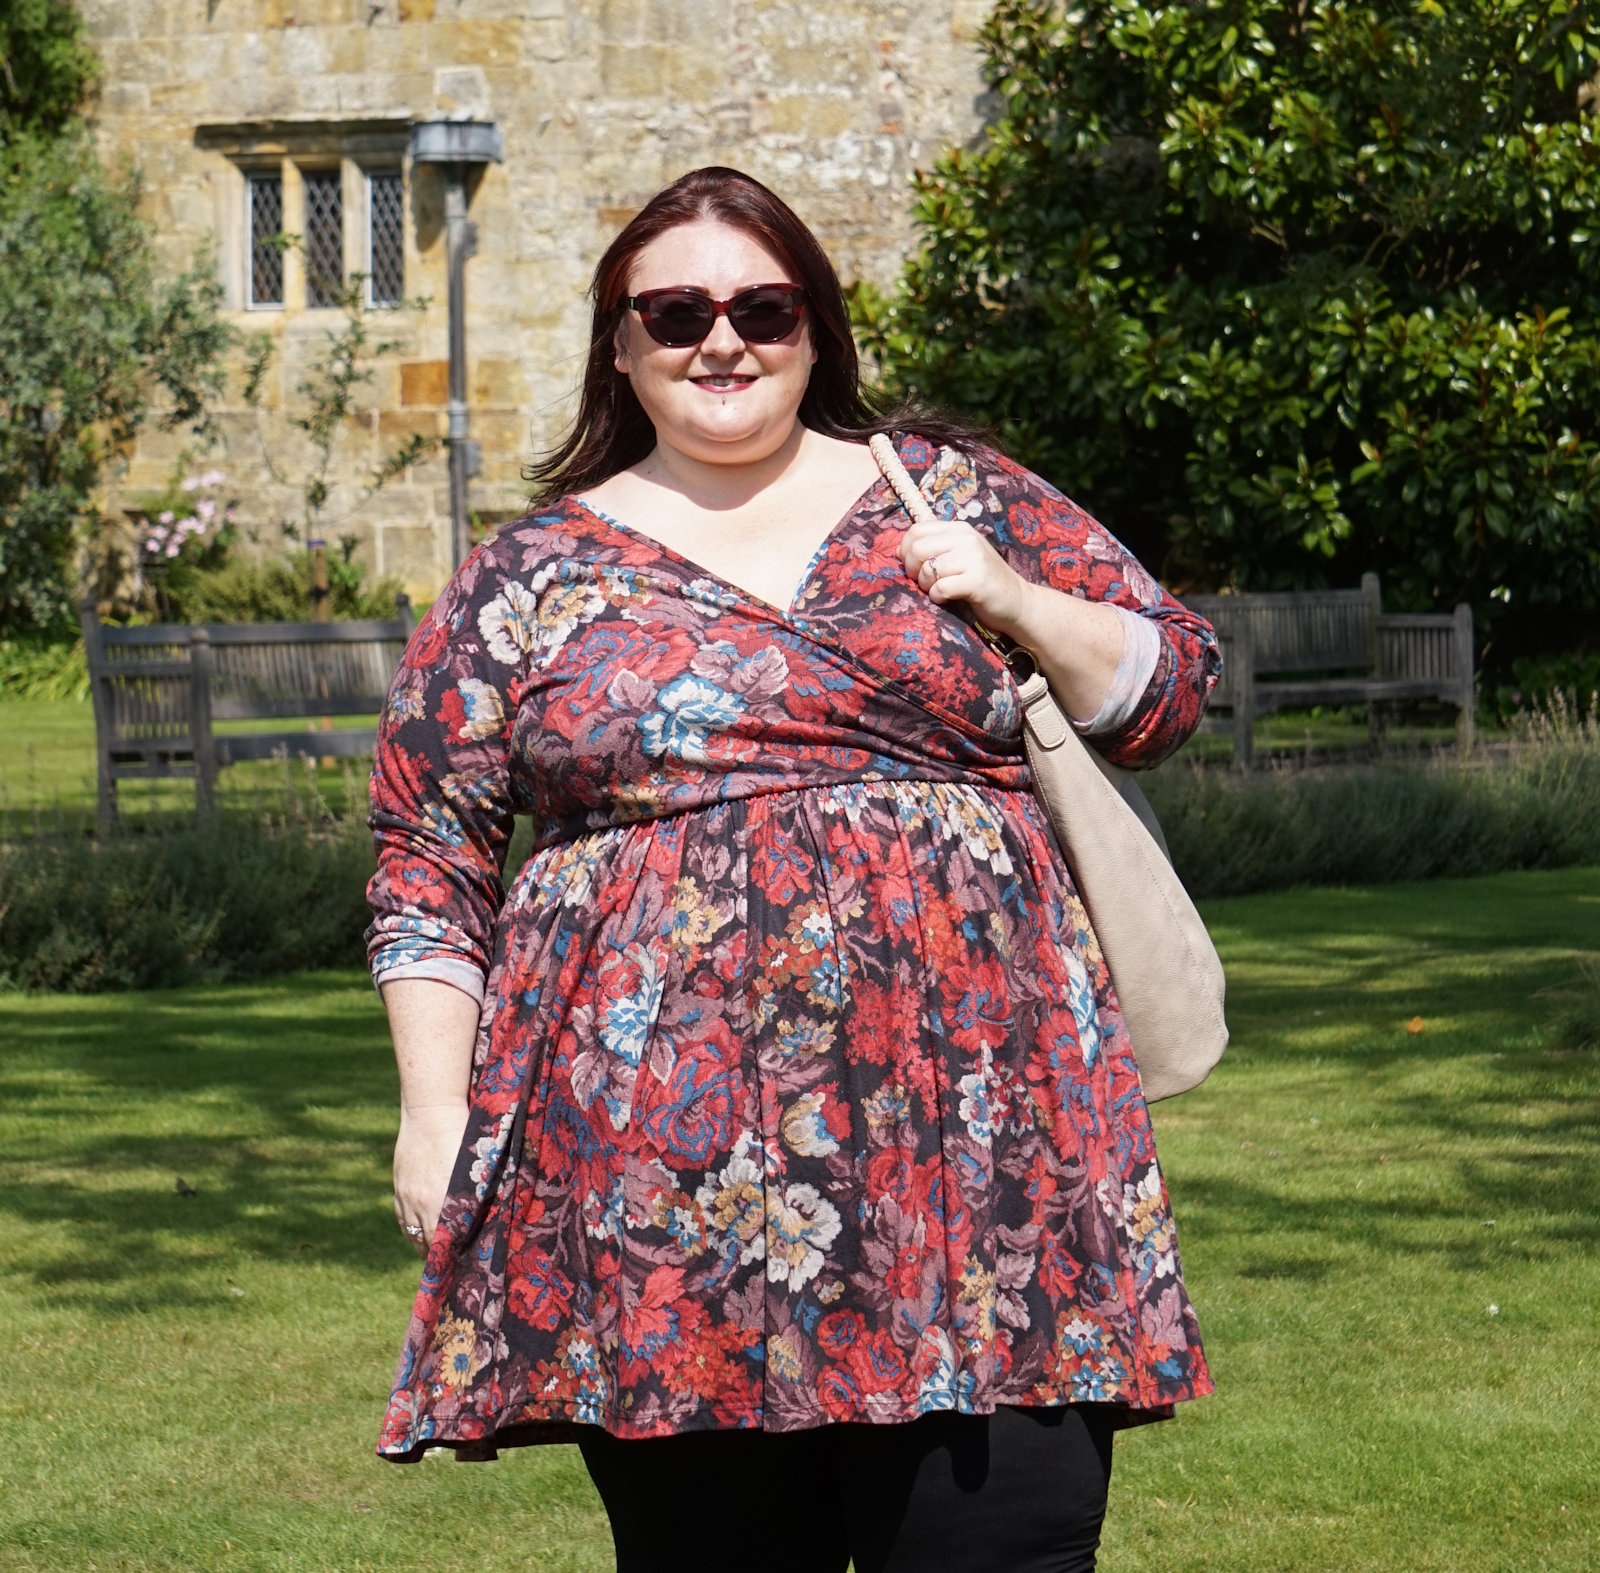 AUTUMNAL-TAPESTRY-PRINT-PLUS-SIZE-DRESS // WWW.XLOVELEAHX.CO.UK